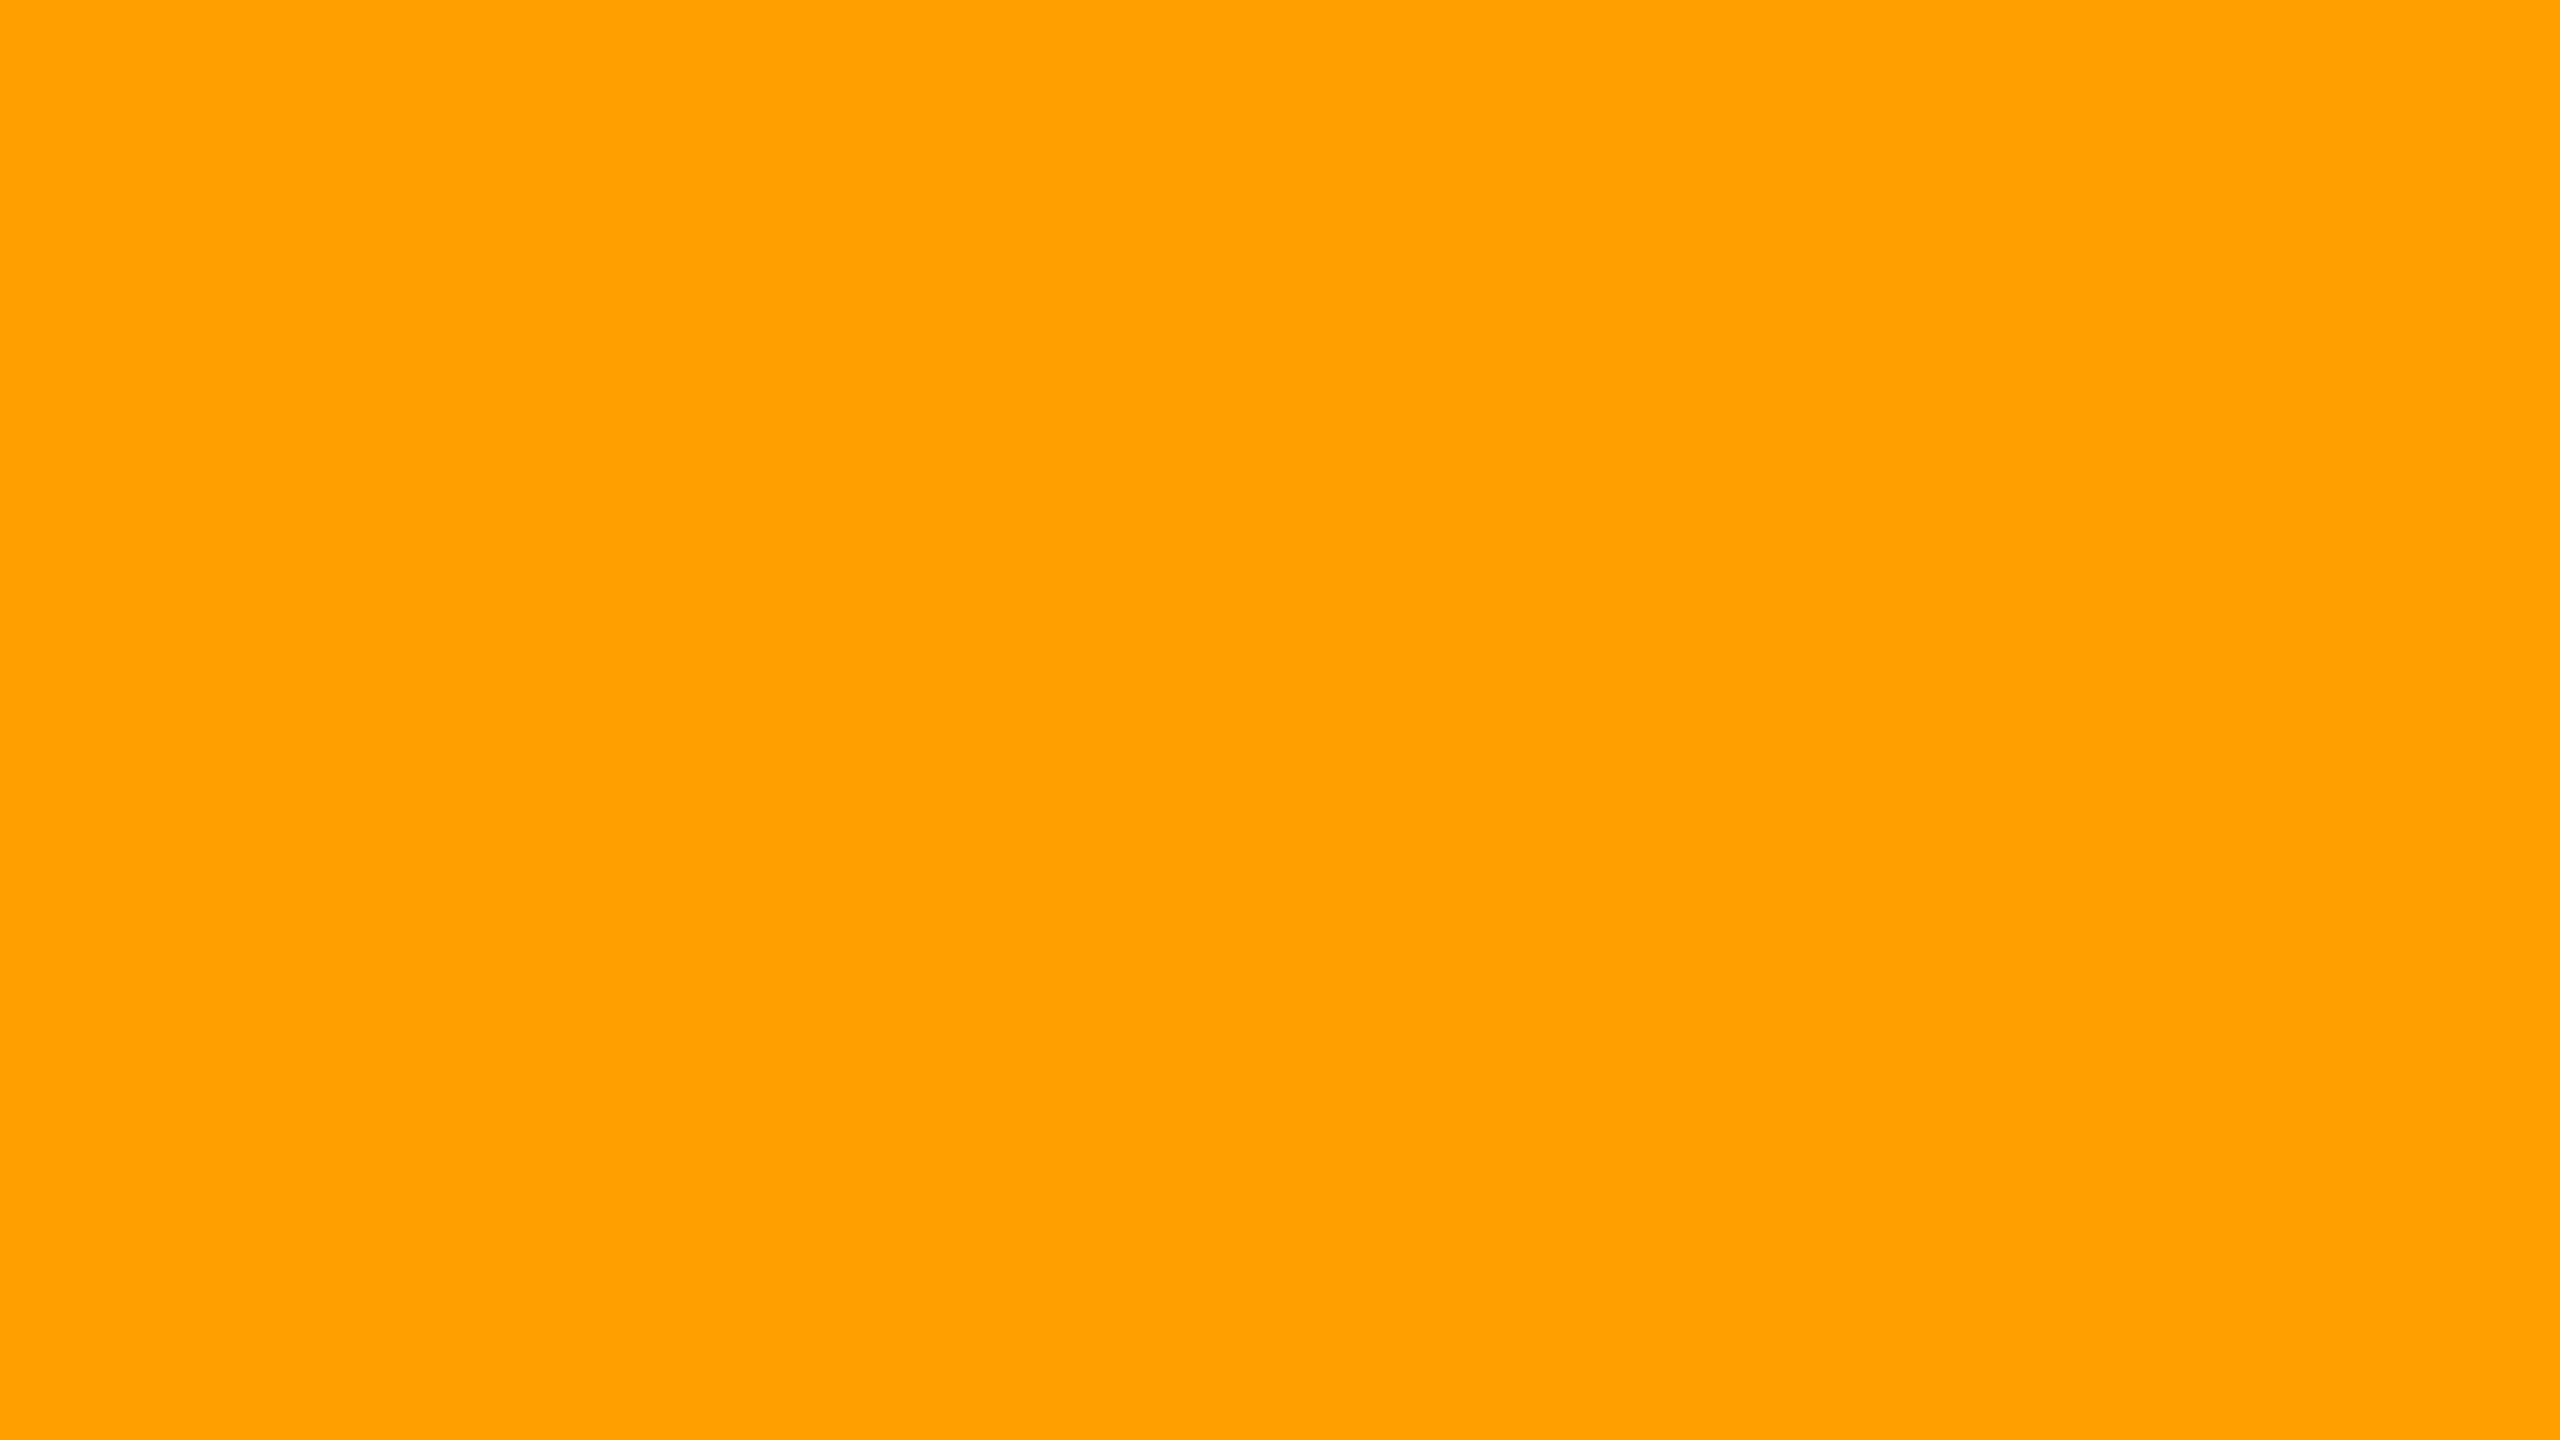 2560x1440 Orange Peel Solid Color Background